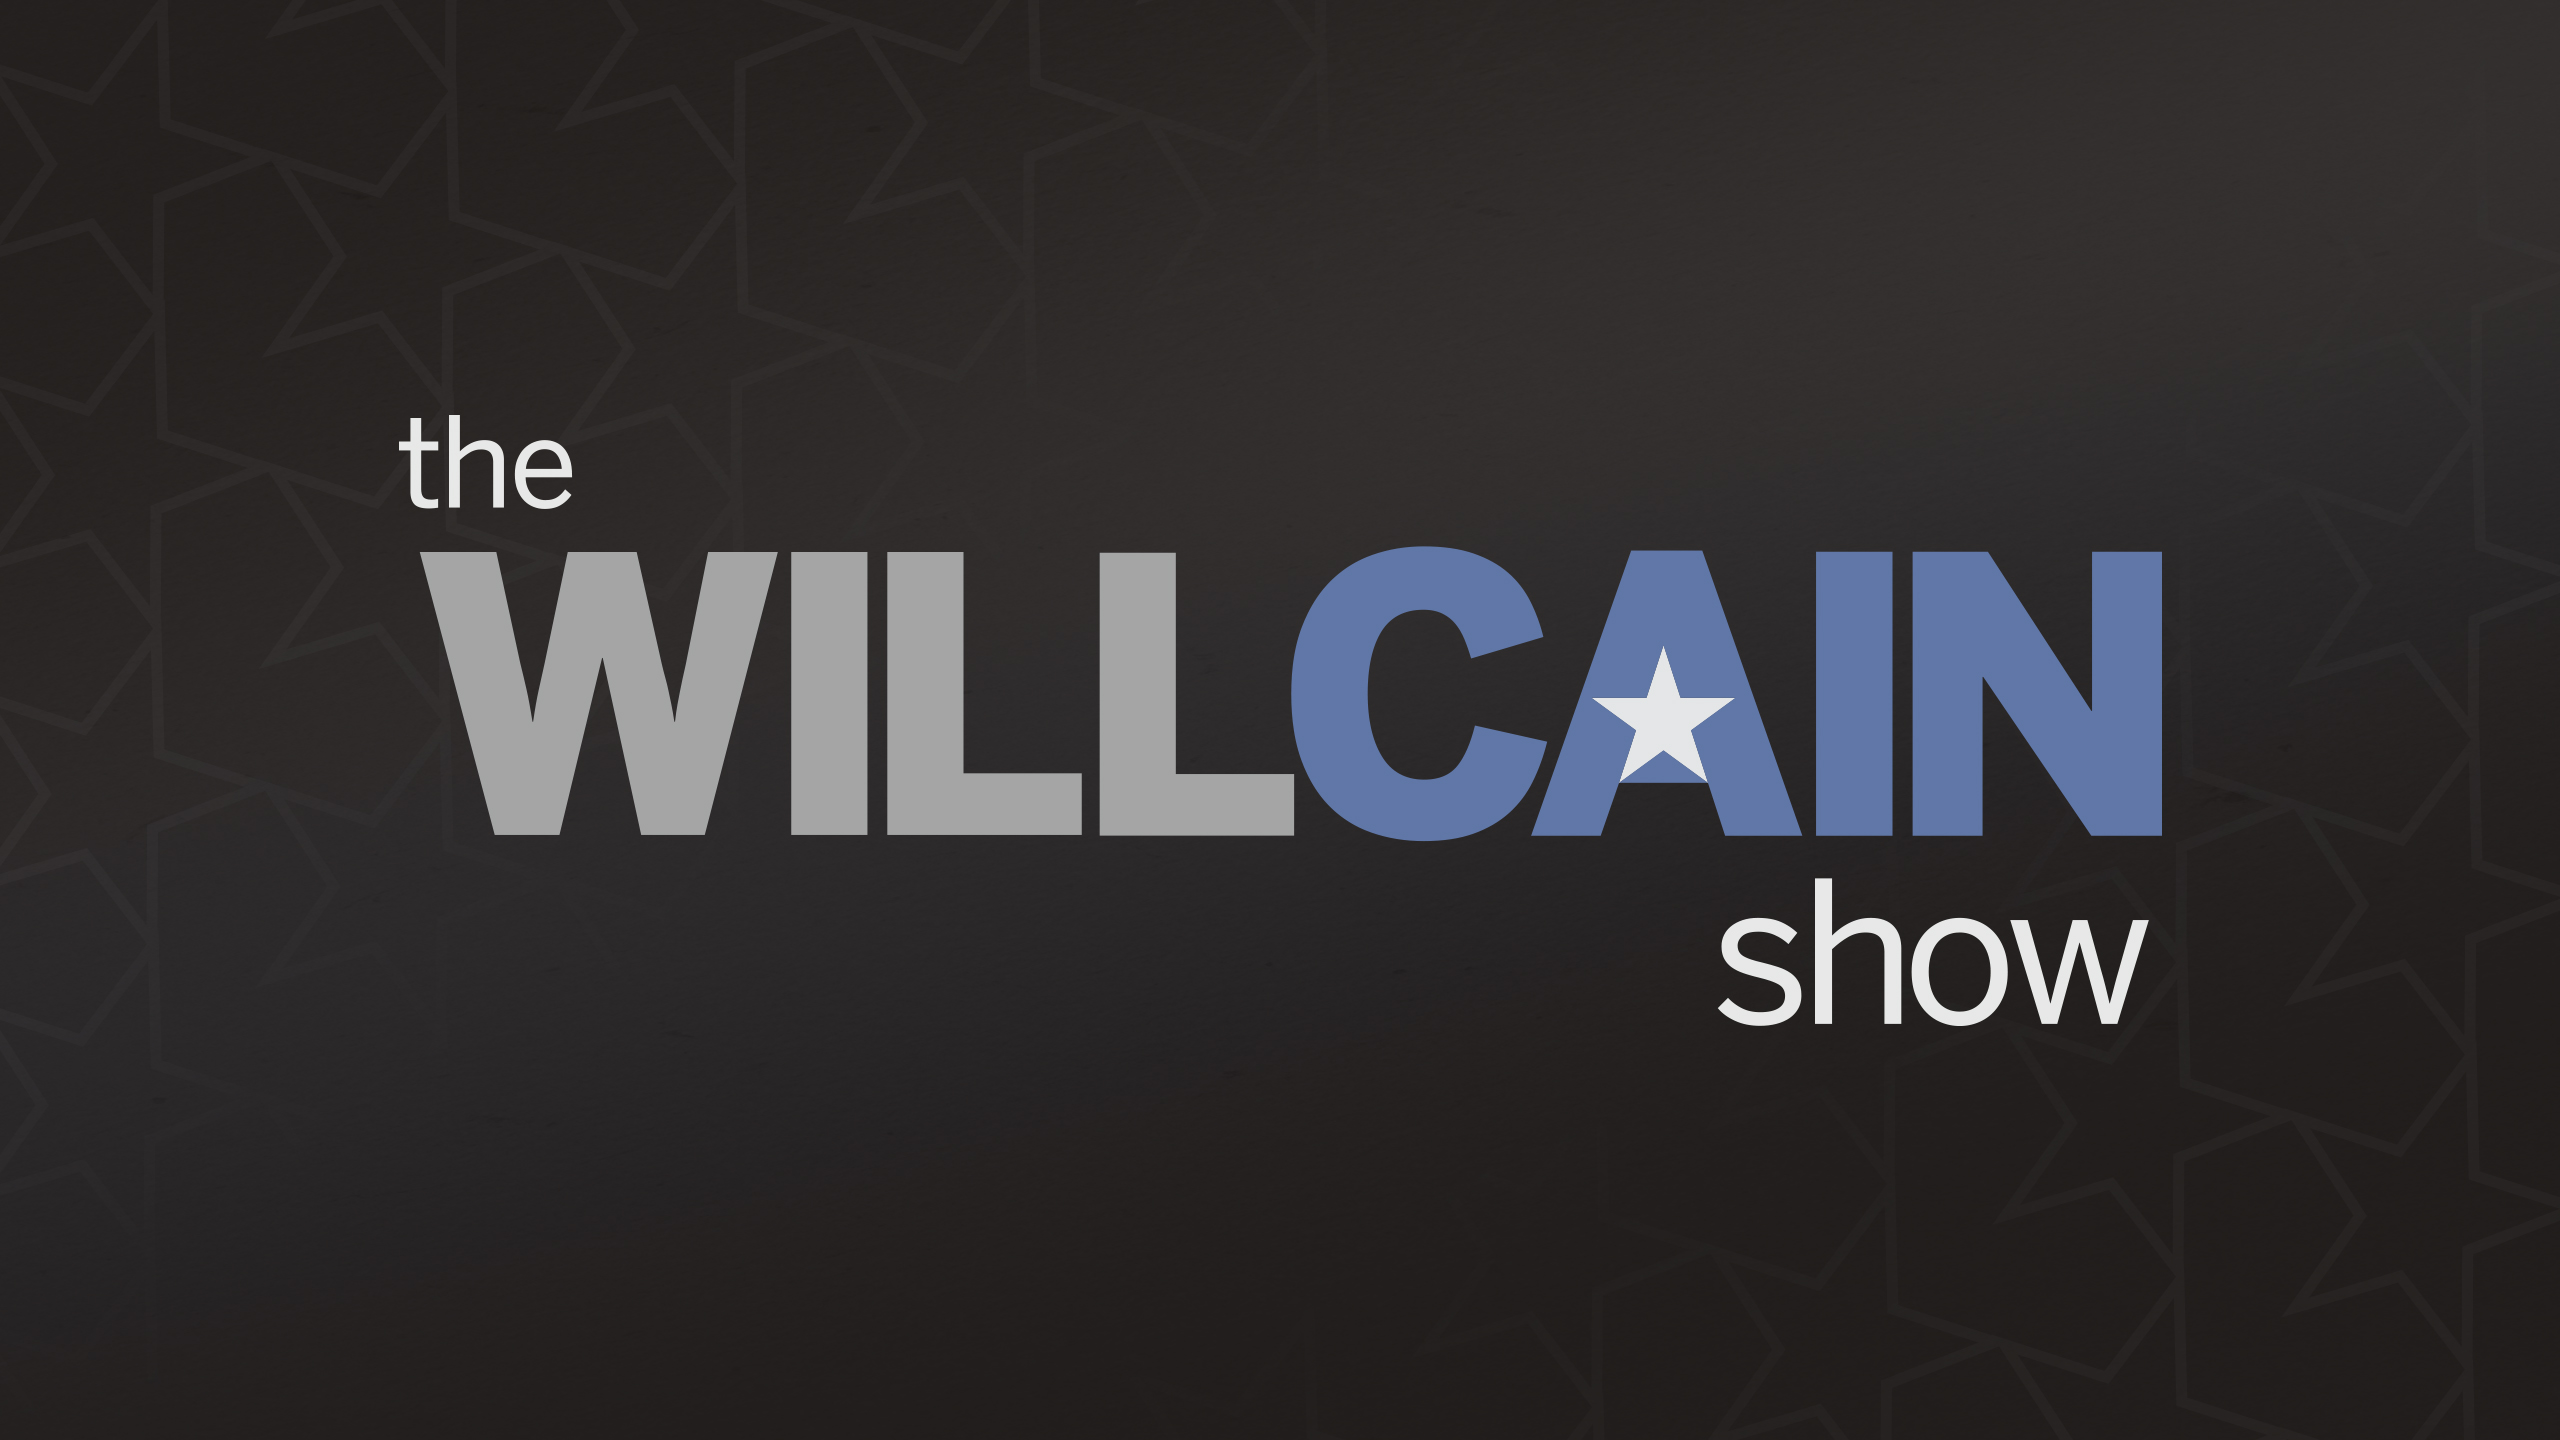 Mon, 11/19 - The Will Cain Show